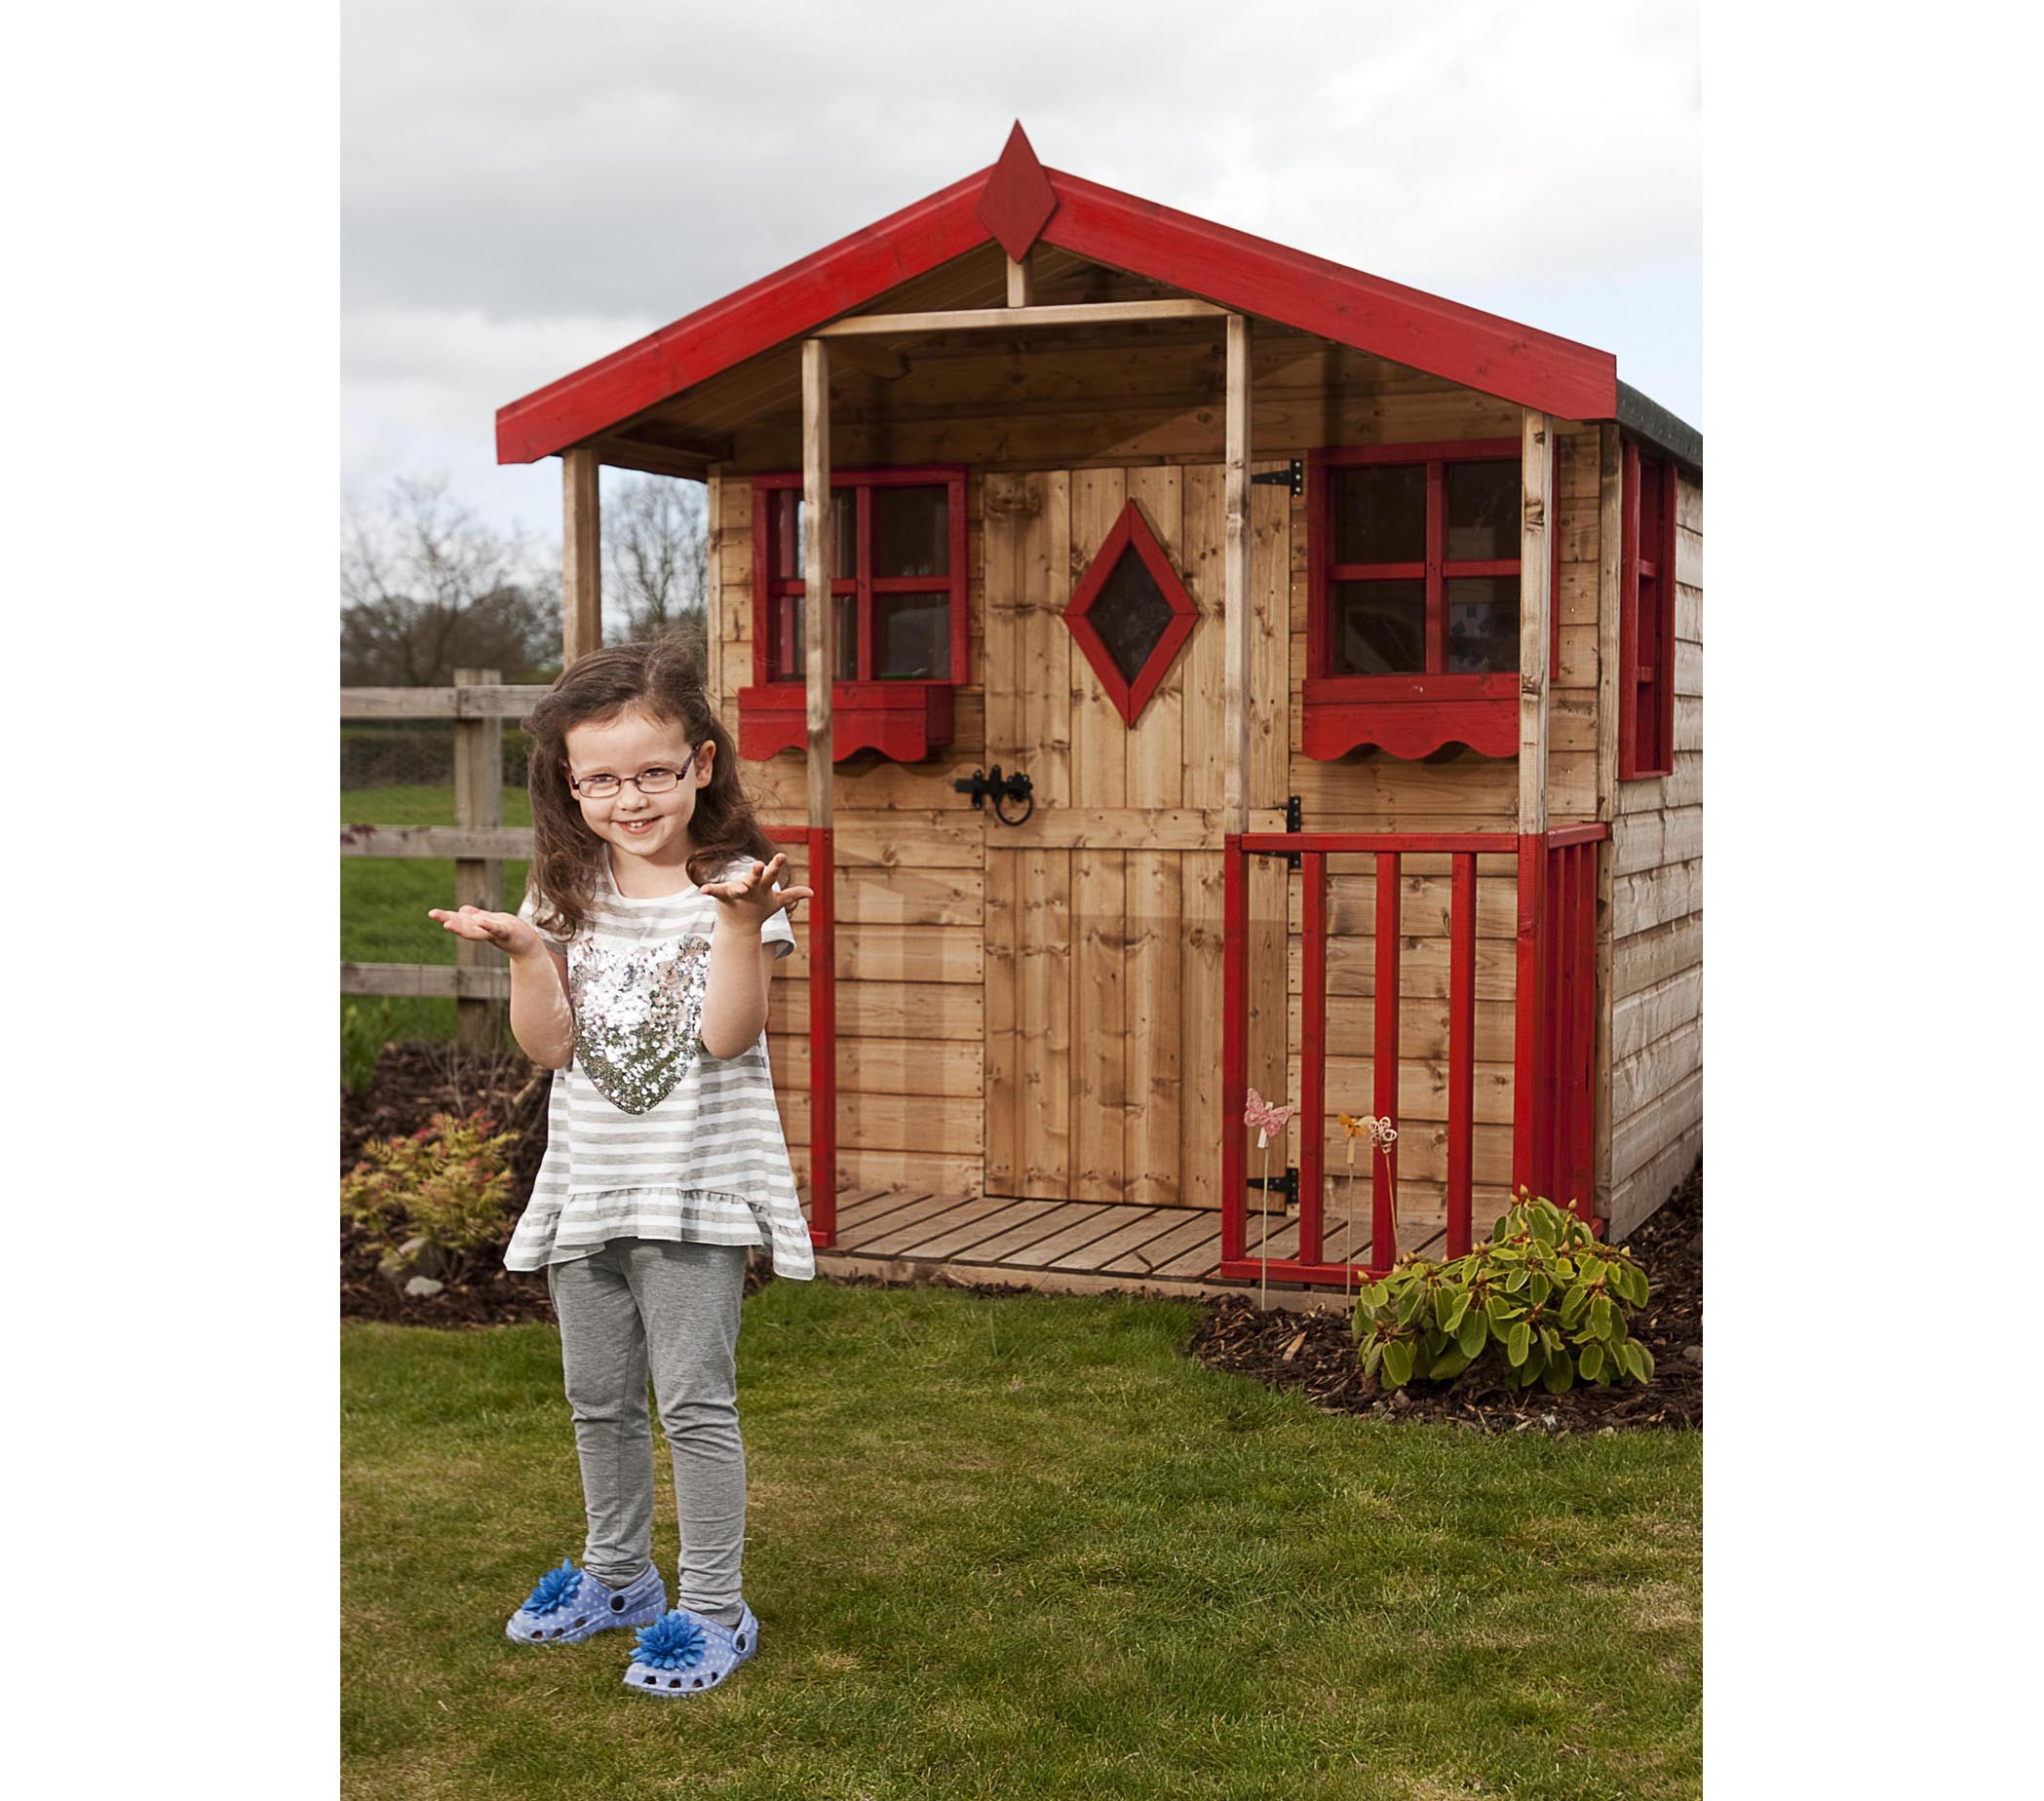 Toddler wins planning battle over wendy house